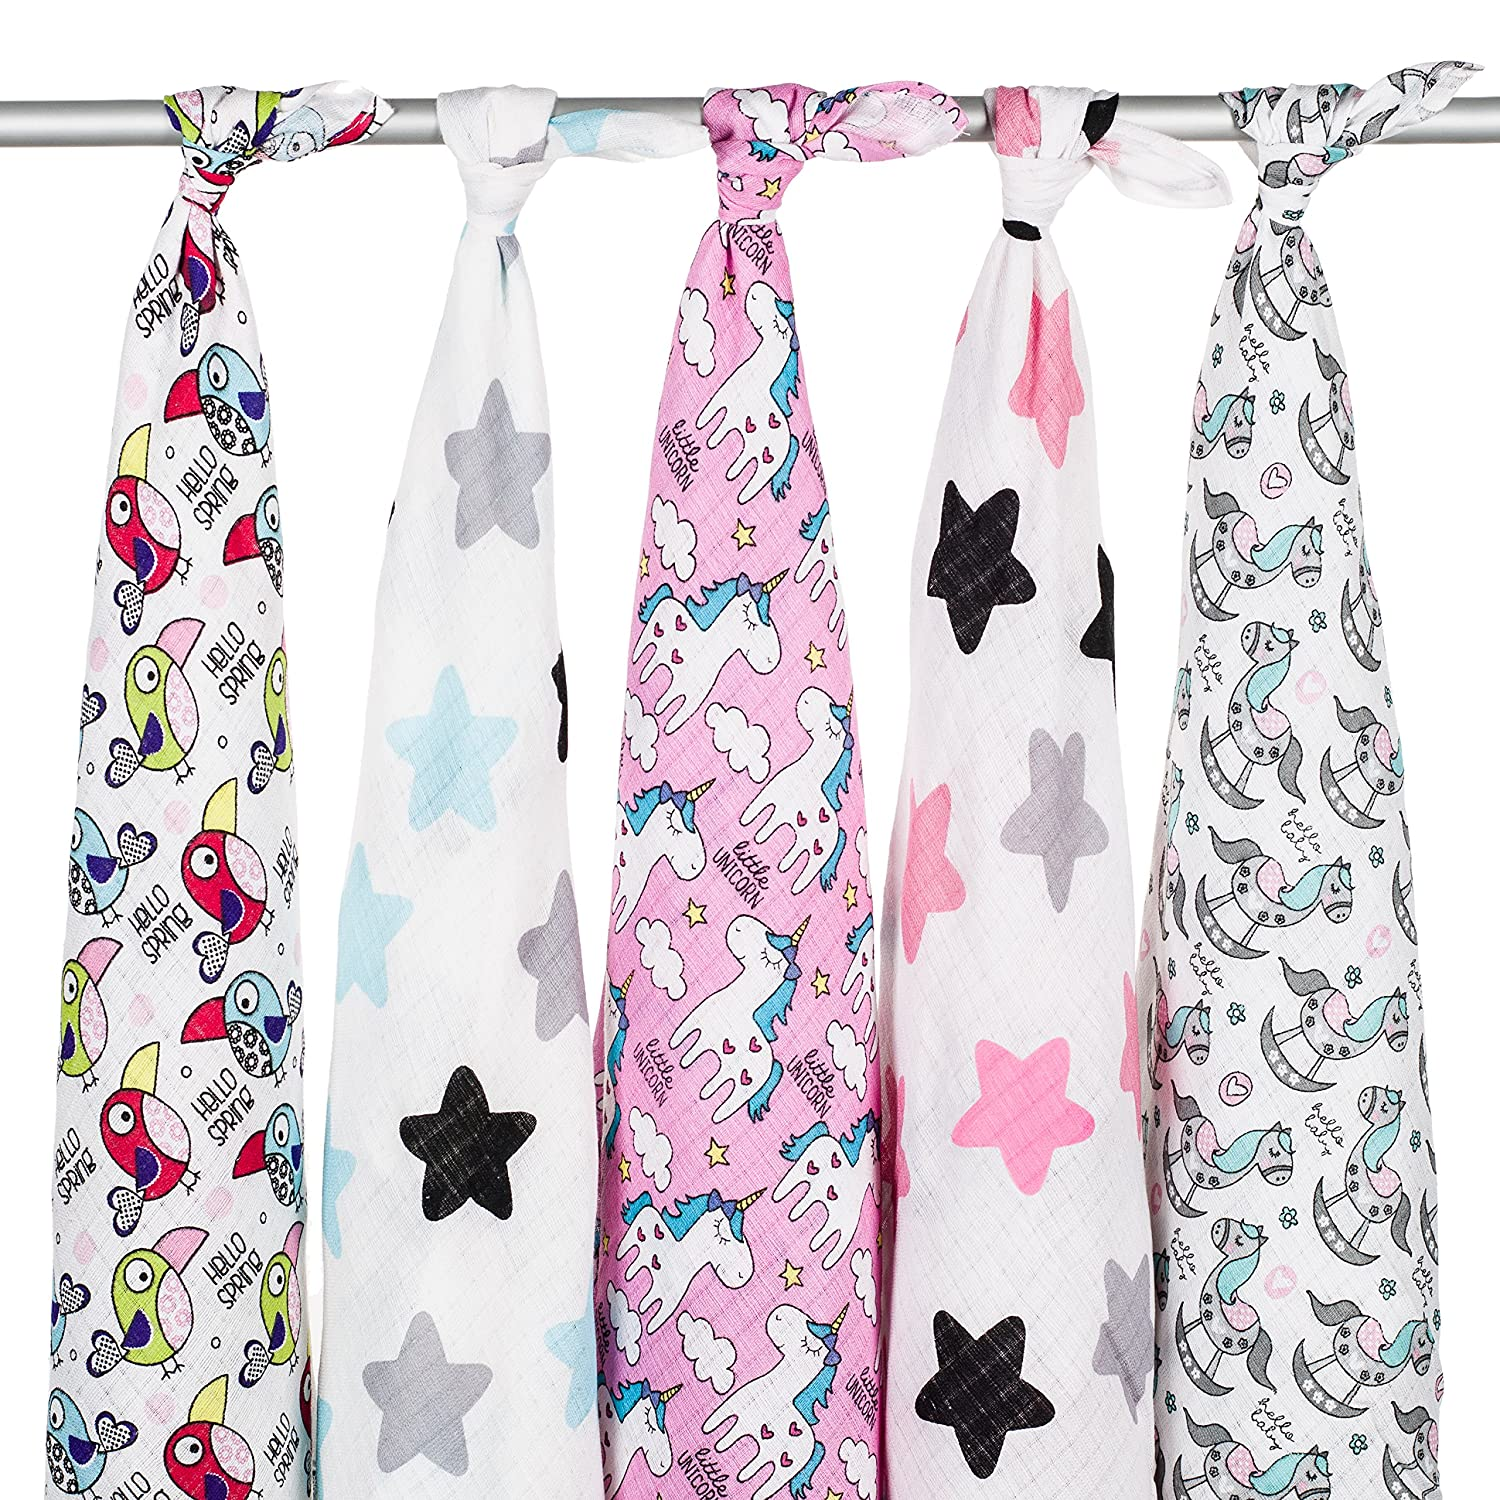 Bib/… Towel Blanket High Quality 5 x 100/% Soft Cotton Baby Muslin Squares Changing Mat Multiply use: Wrap Cover Nappy Little Star Set Face Cloth Large 80x70